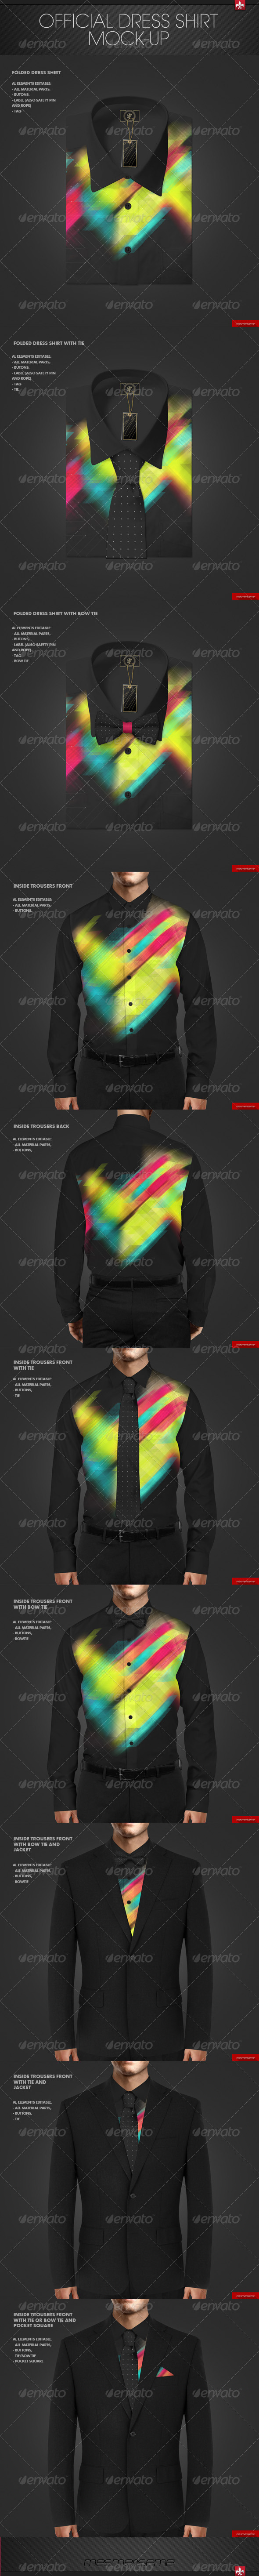 GraphicRiver Official Dress Shirt Mock-up 7608196